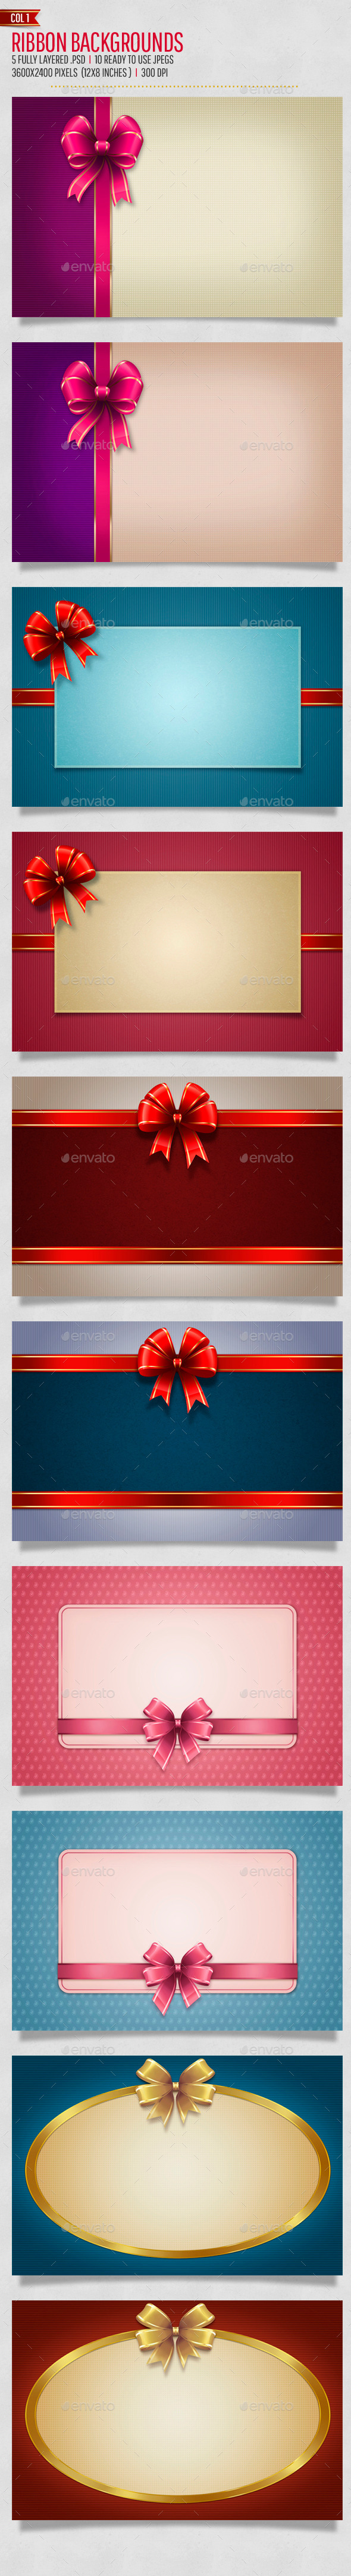 Bow / Ribbon Backgrounds Col1 - Backgrounds Graphics